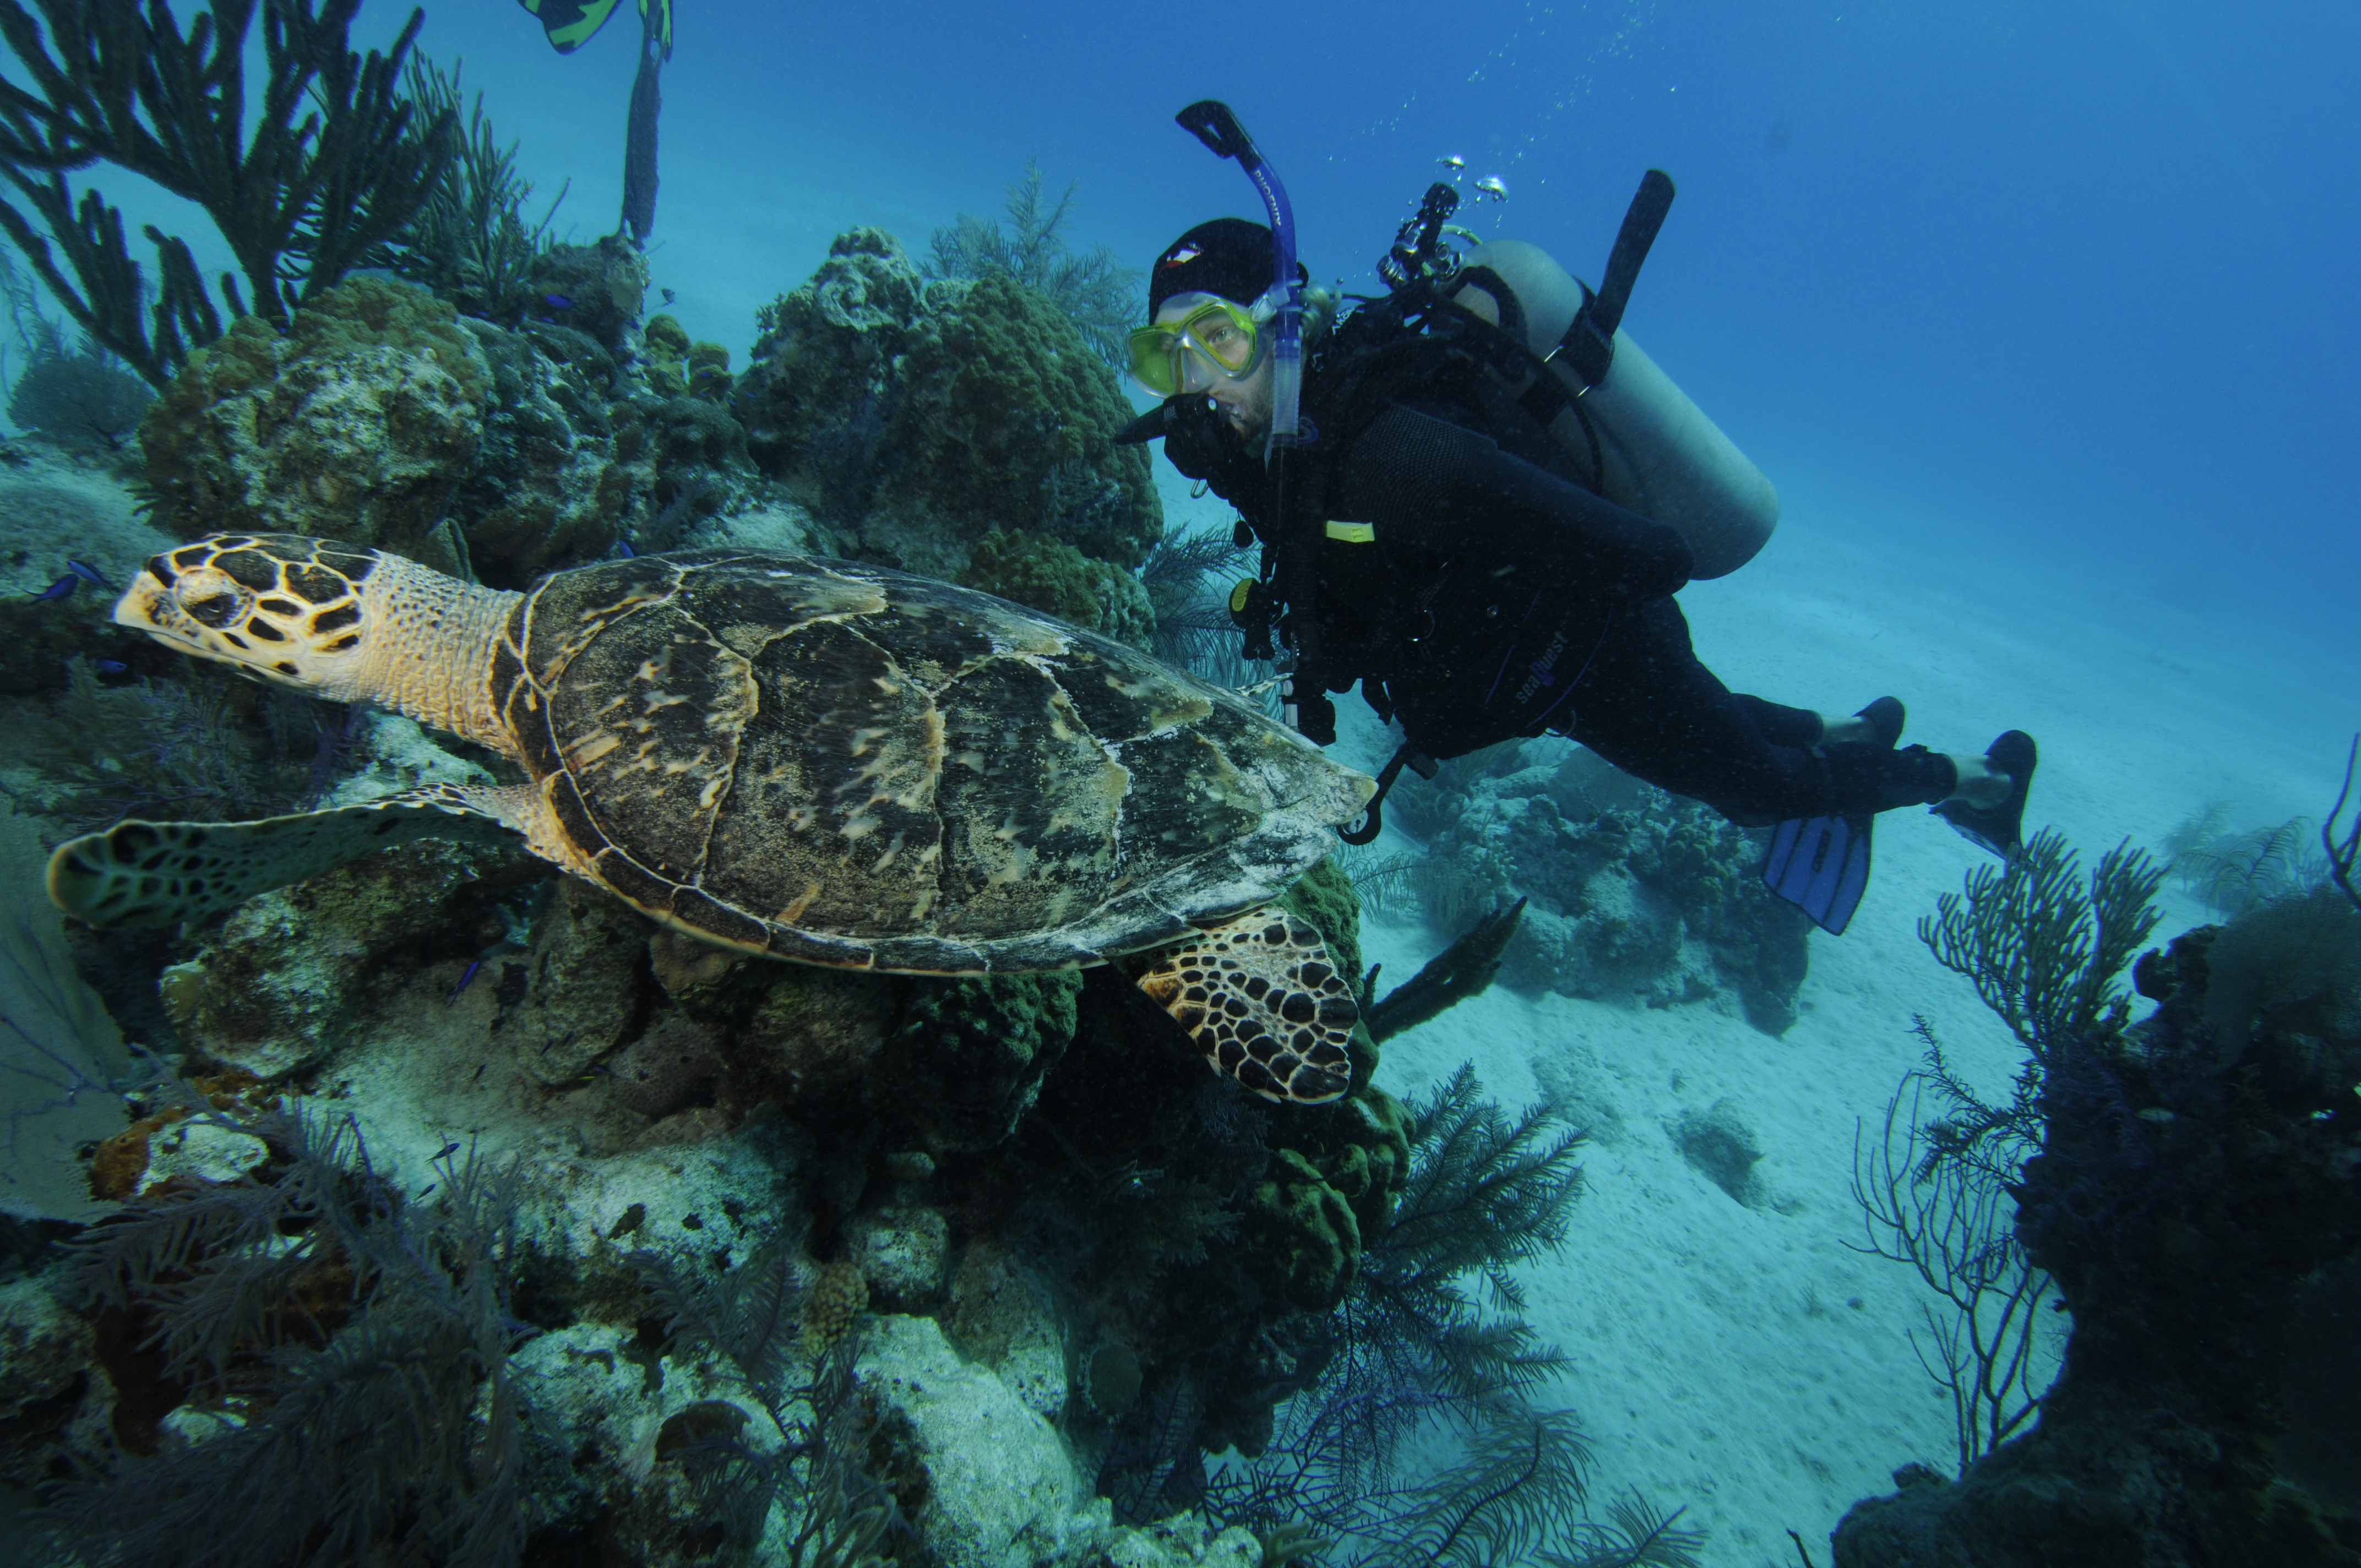 Grand Turk Diving, Turks And Caicos Diving, Caribbean